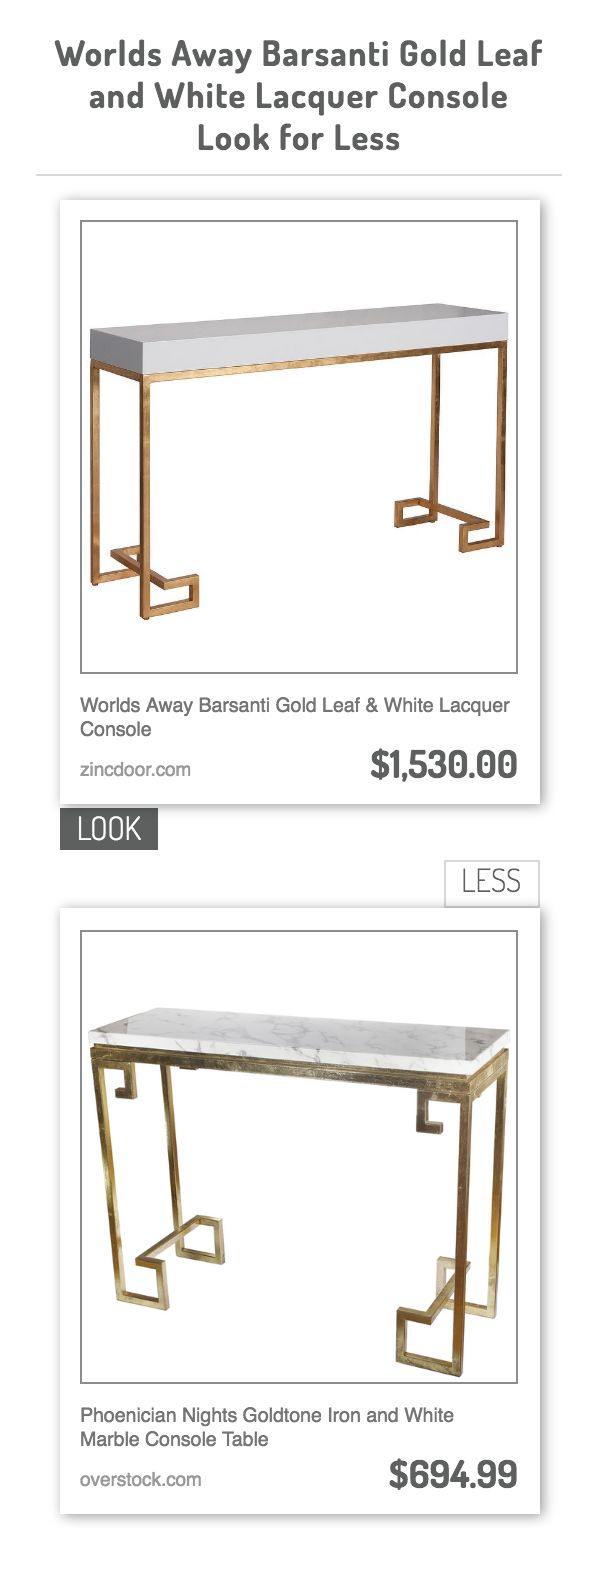 Modern hallway storage gold console table gold metal console table - Worlds Away Barsanti Gold Leaf White Lacquer Console Vs Phoenician Nights Goldtone Iron And White